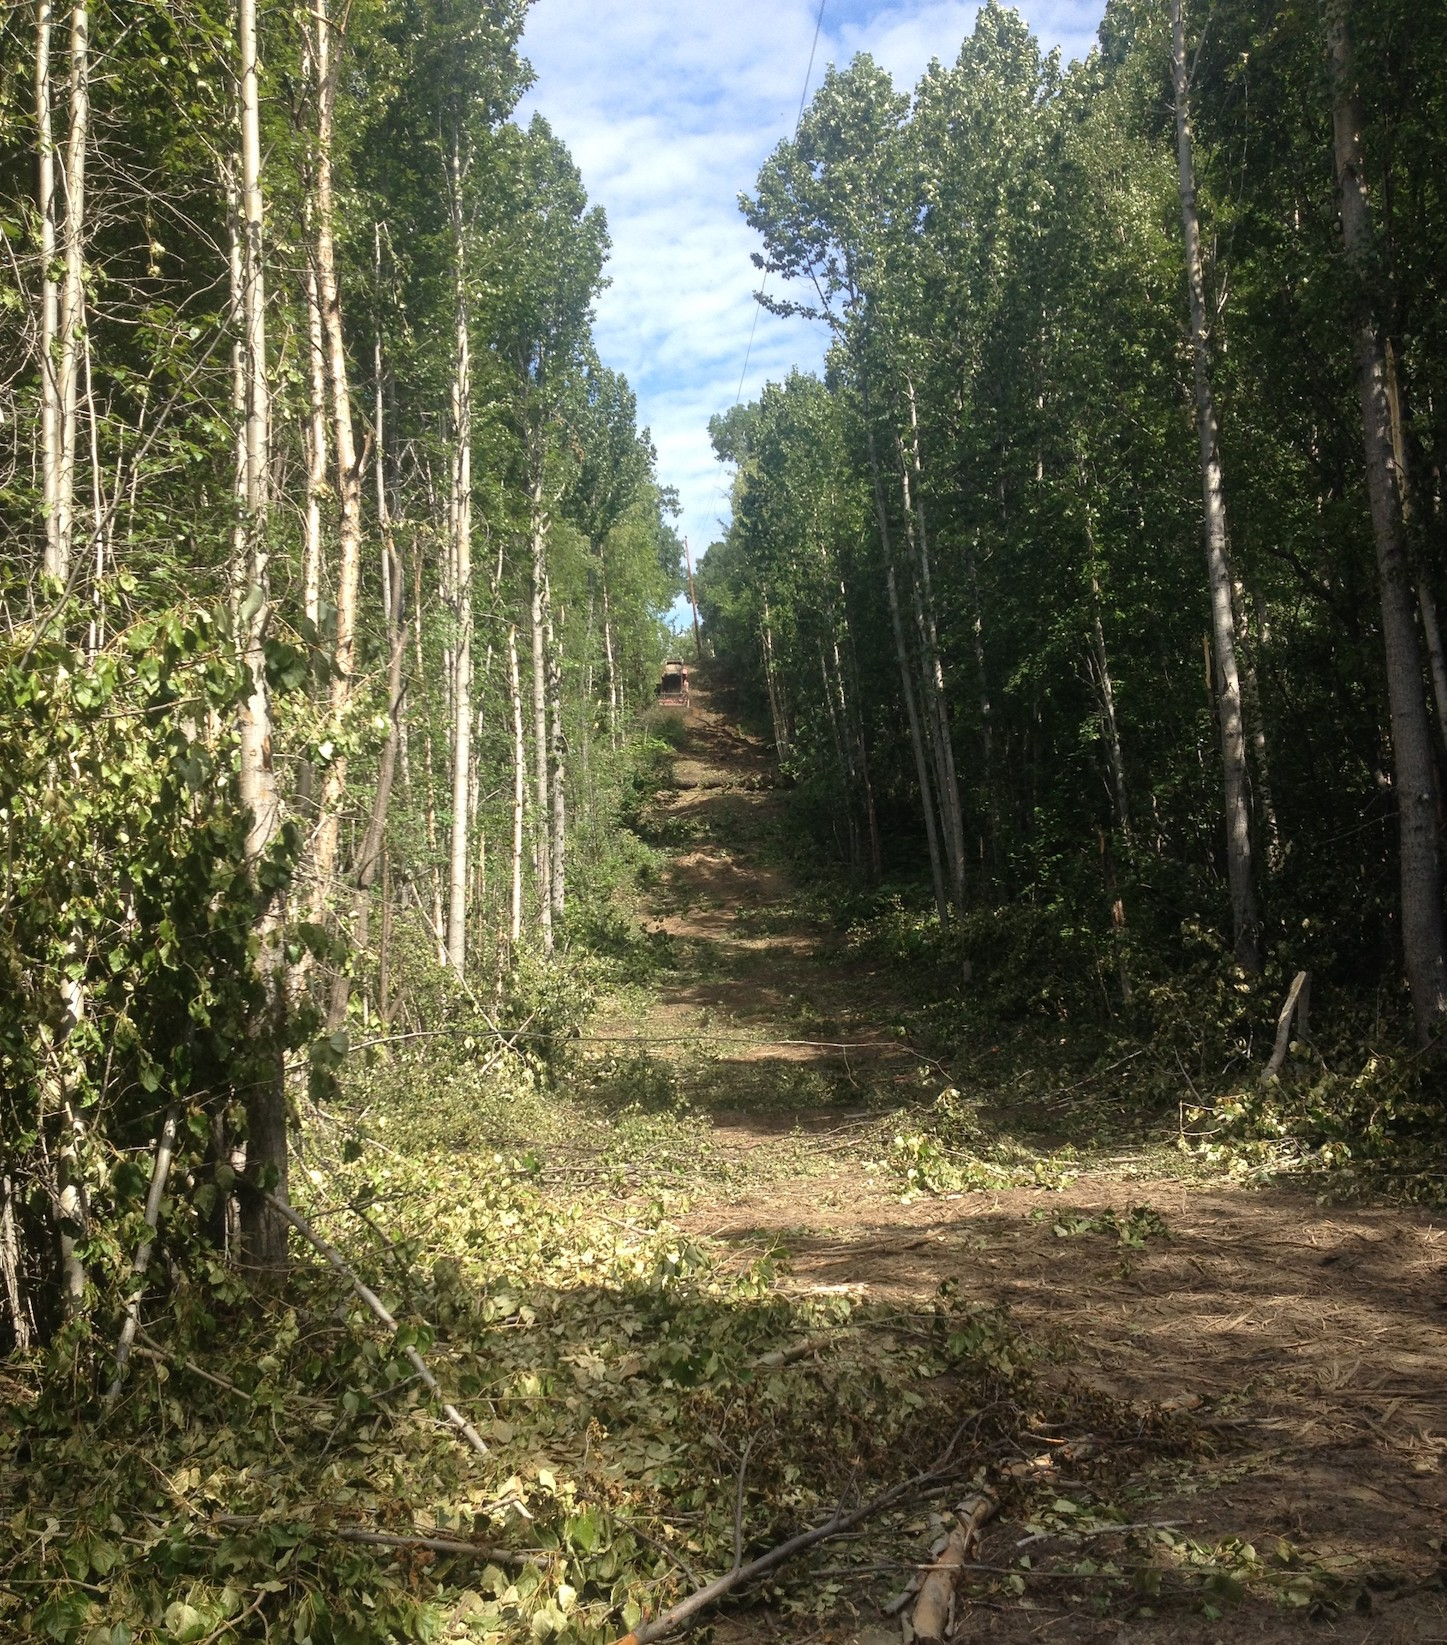 Robinson loop, AK, heavily wooded and shrubby area with power line above